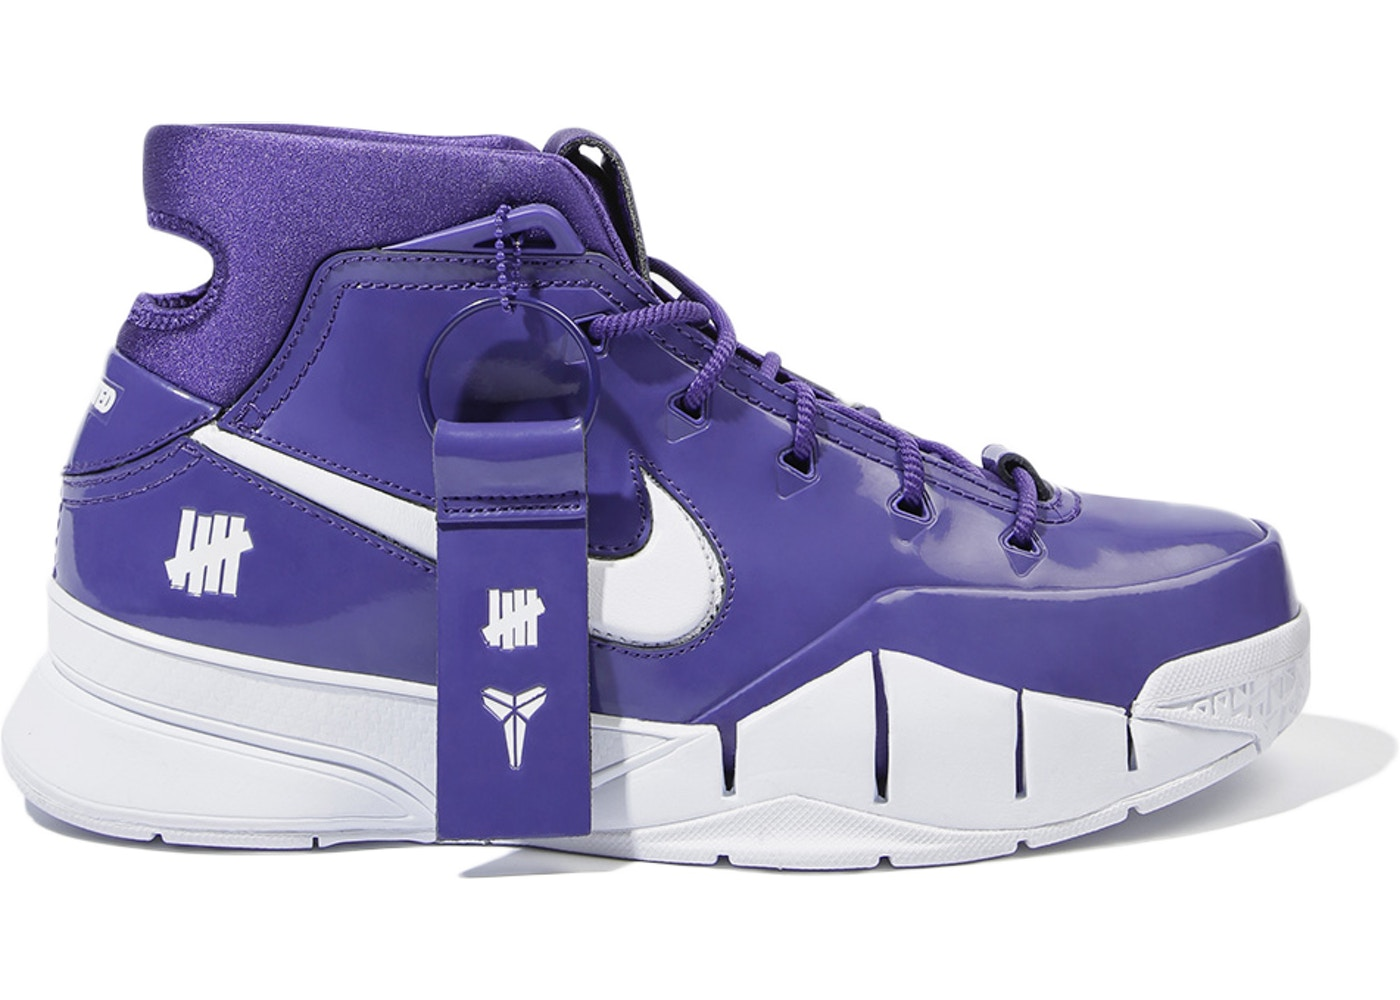 a58f8c4eed64 Sell. or Ask. Size  9.5. View All Bids. Kobe 1 Protro Undefeated ...